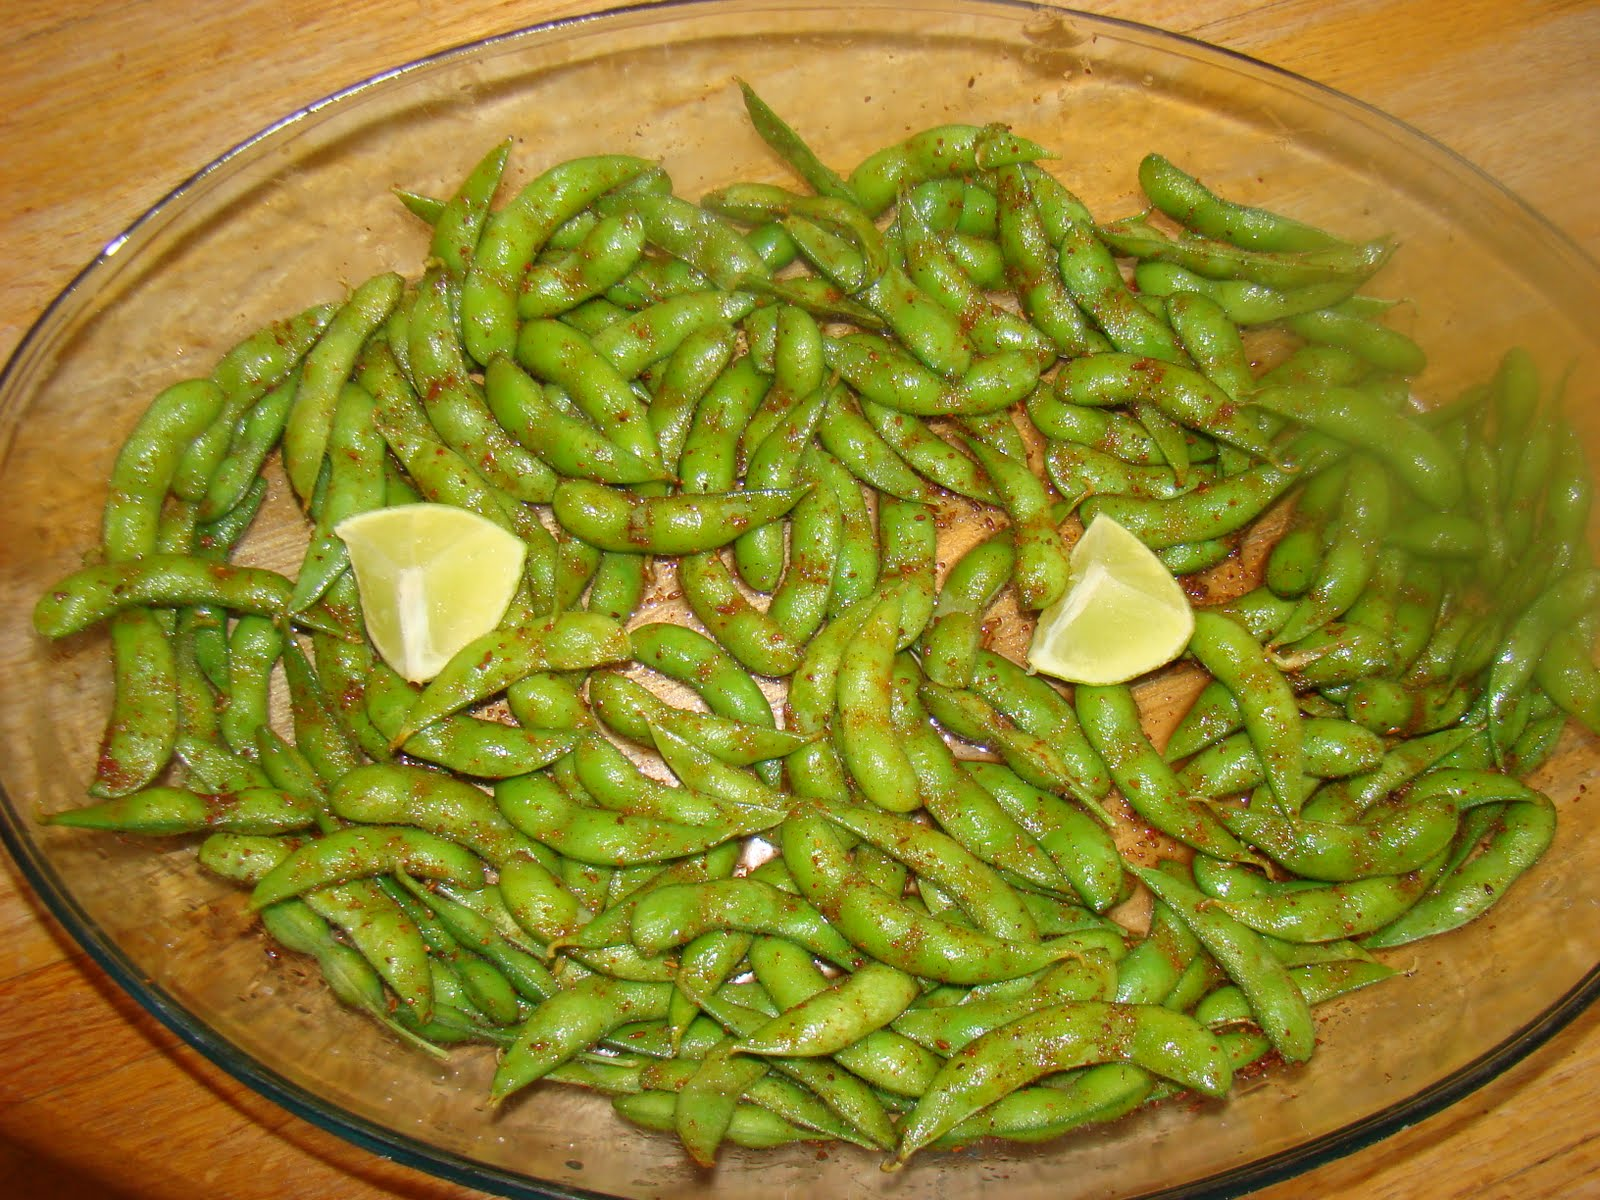 edamame snack recipes - photo #20